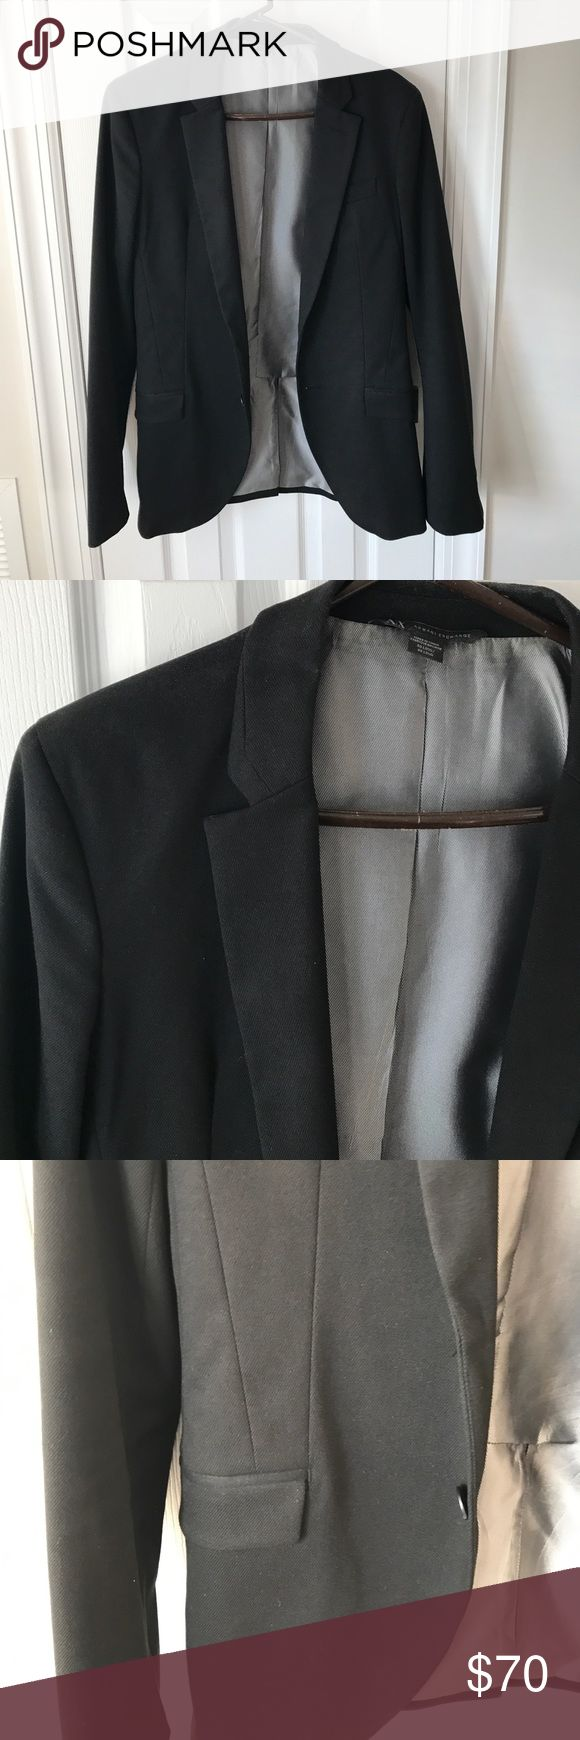 Mens Armani Exchange blazer One button Armani exchange black blazer in great condition. Can be worn with black pants or with jeans. A/X Armani Exchange Suits & Blazers Sport Coats & Blazers